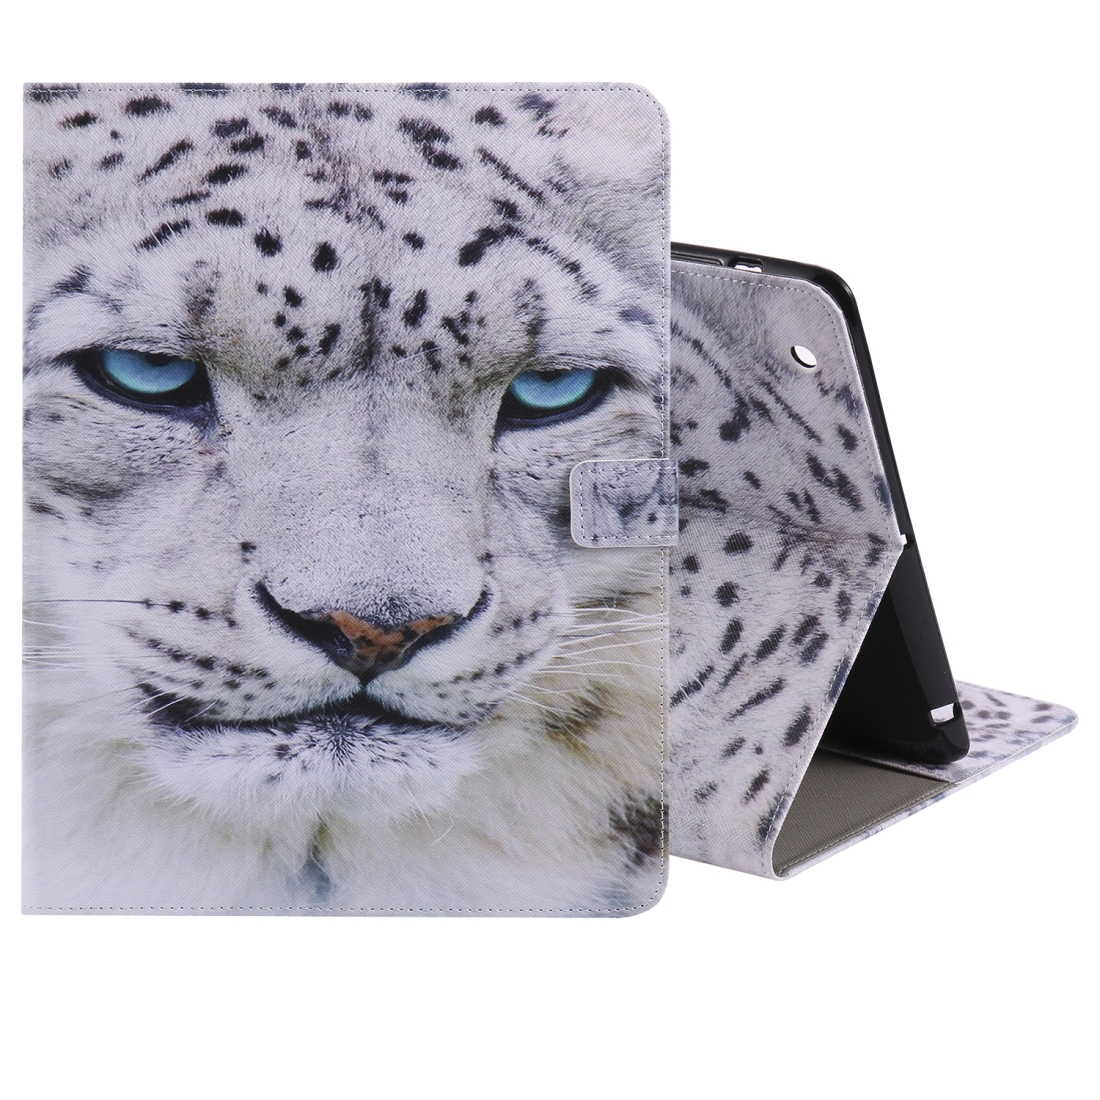 iPad 4 Case Featuring A Protective Durable Leather Cover, Slim Profile & Auto Sleep (White Panther)